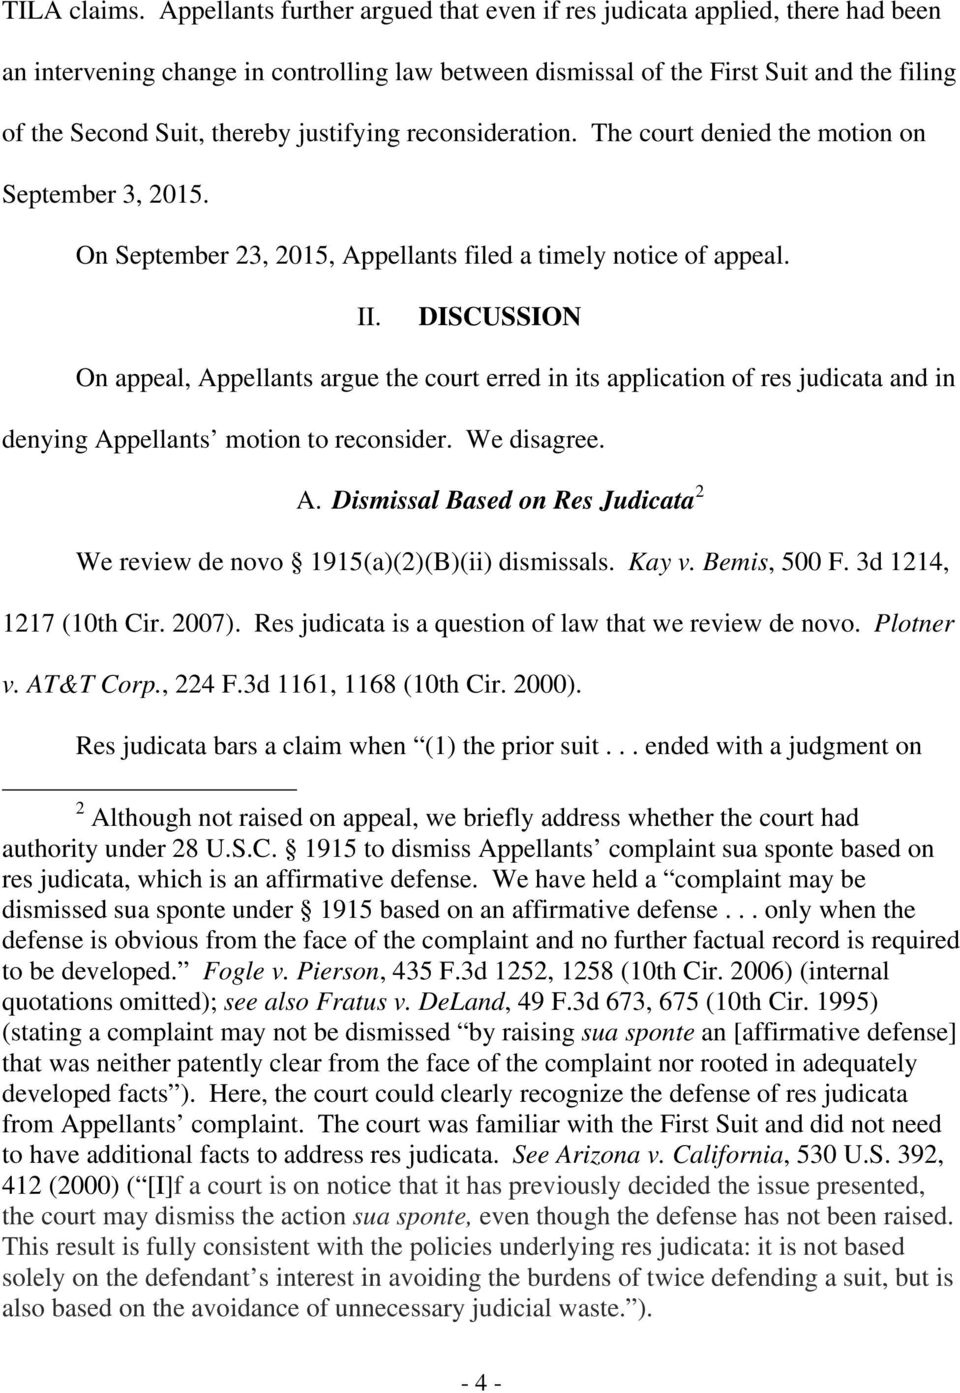 justifying reconsideration. The court denied the motion on September 3, 2015. On September 23, 2015, Appellants filed a timely notice of appeal. II.